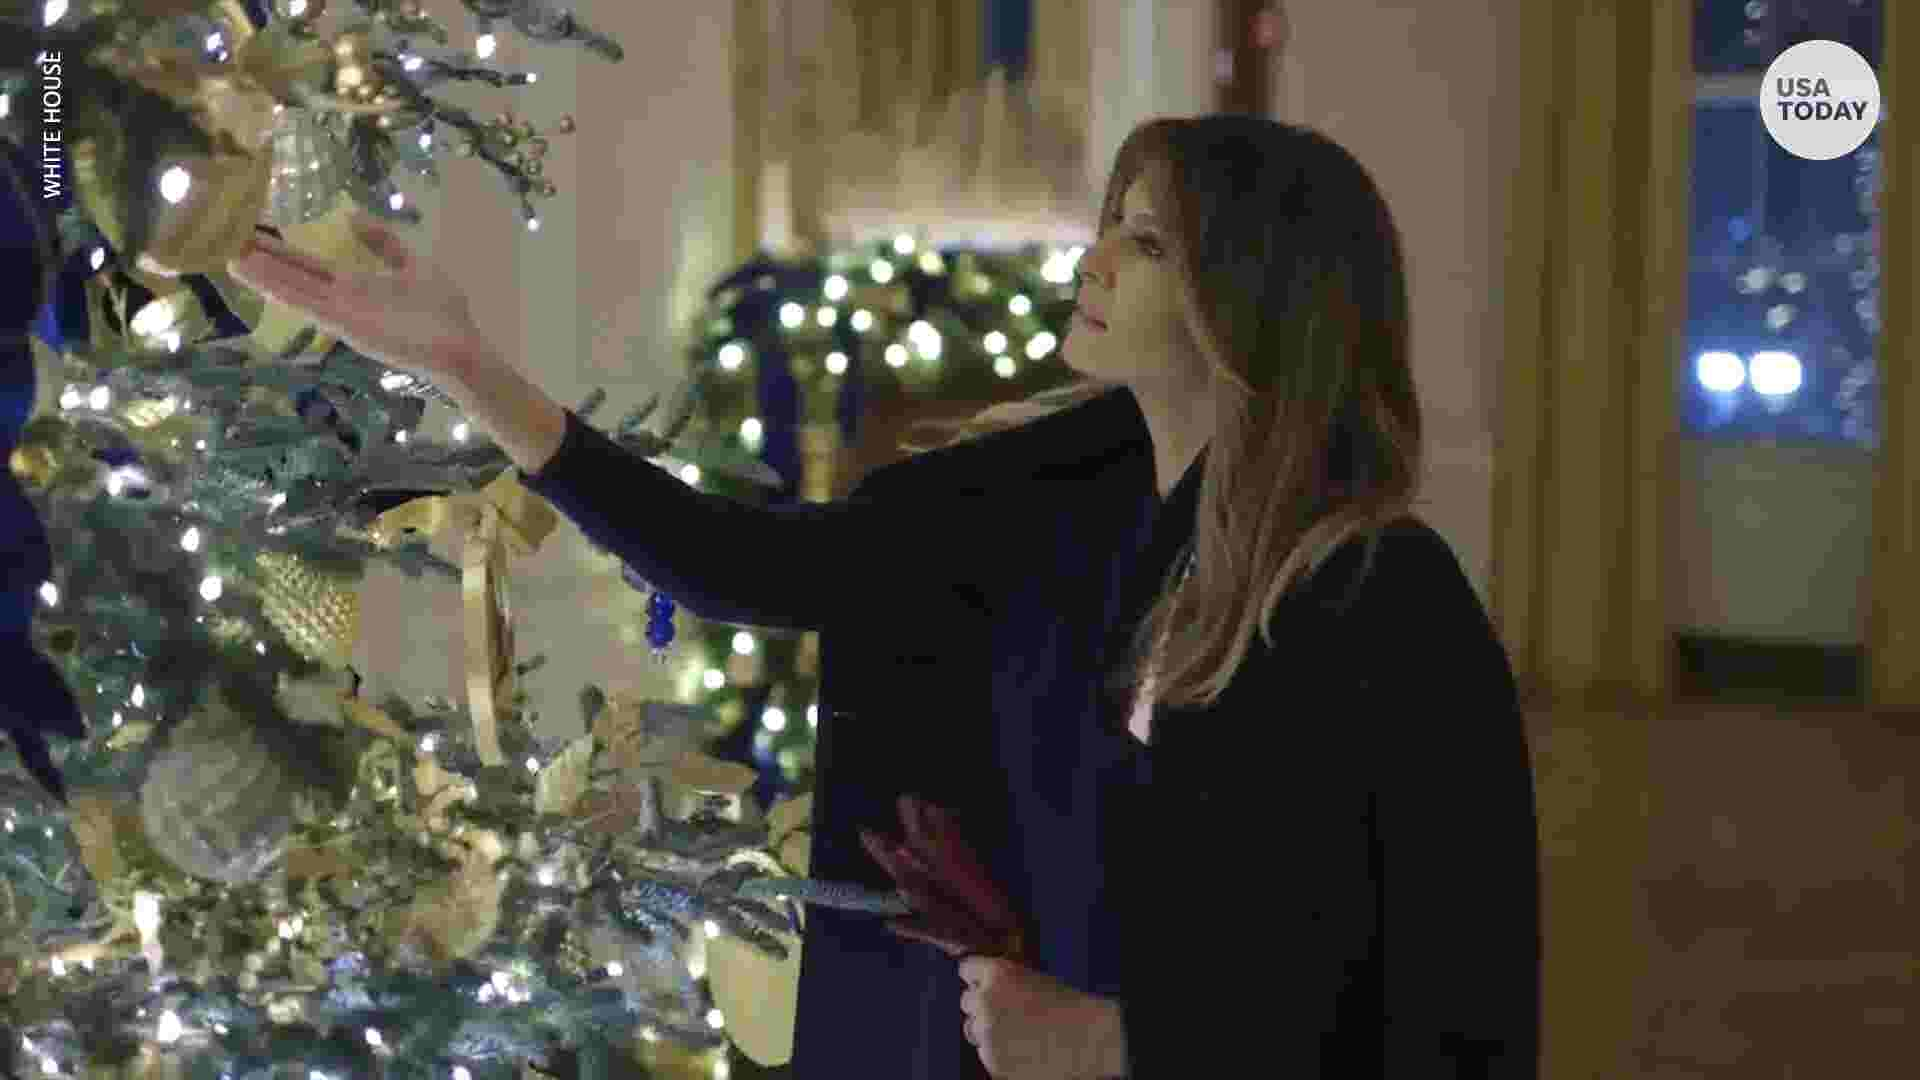 Melania Trump Gives Bush A Tour Of Much Talked About White House Christmas Decor